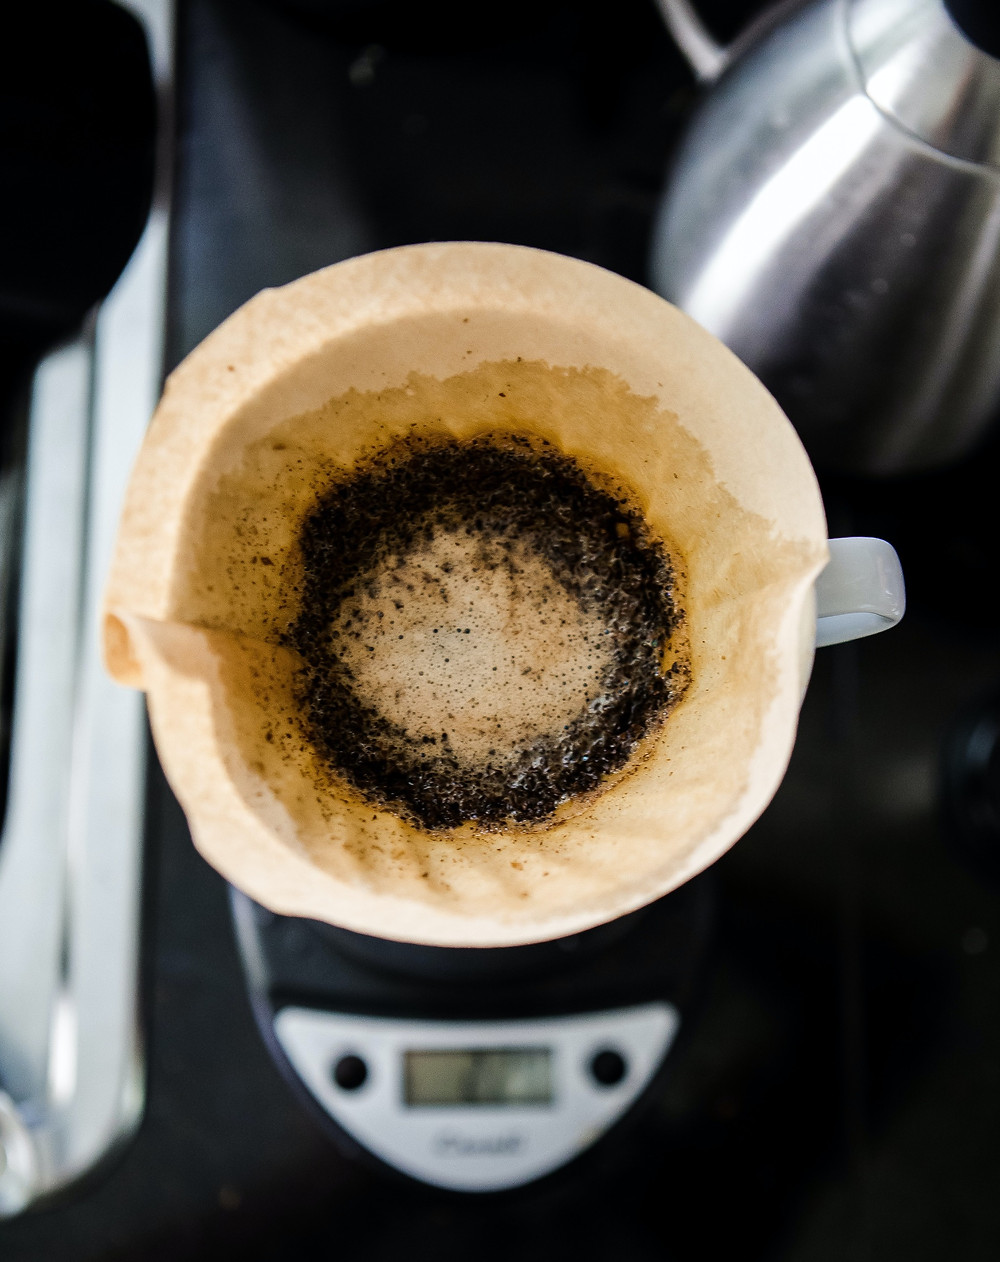 Leftover coffee grounds in coffee machine